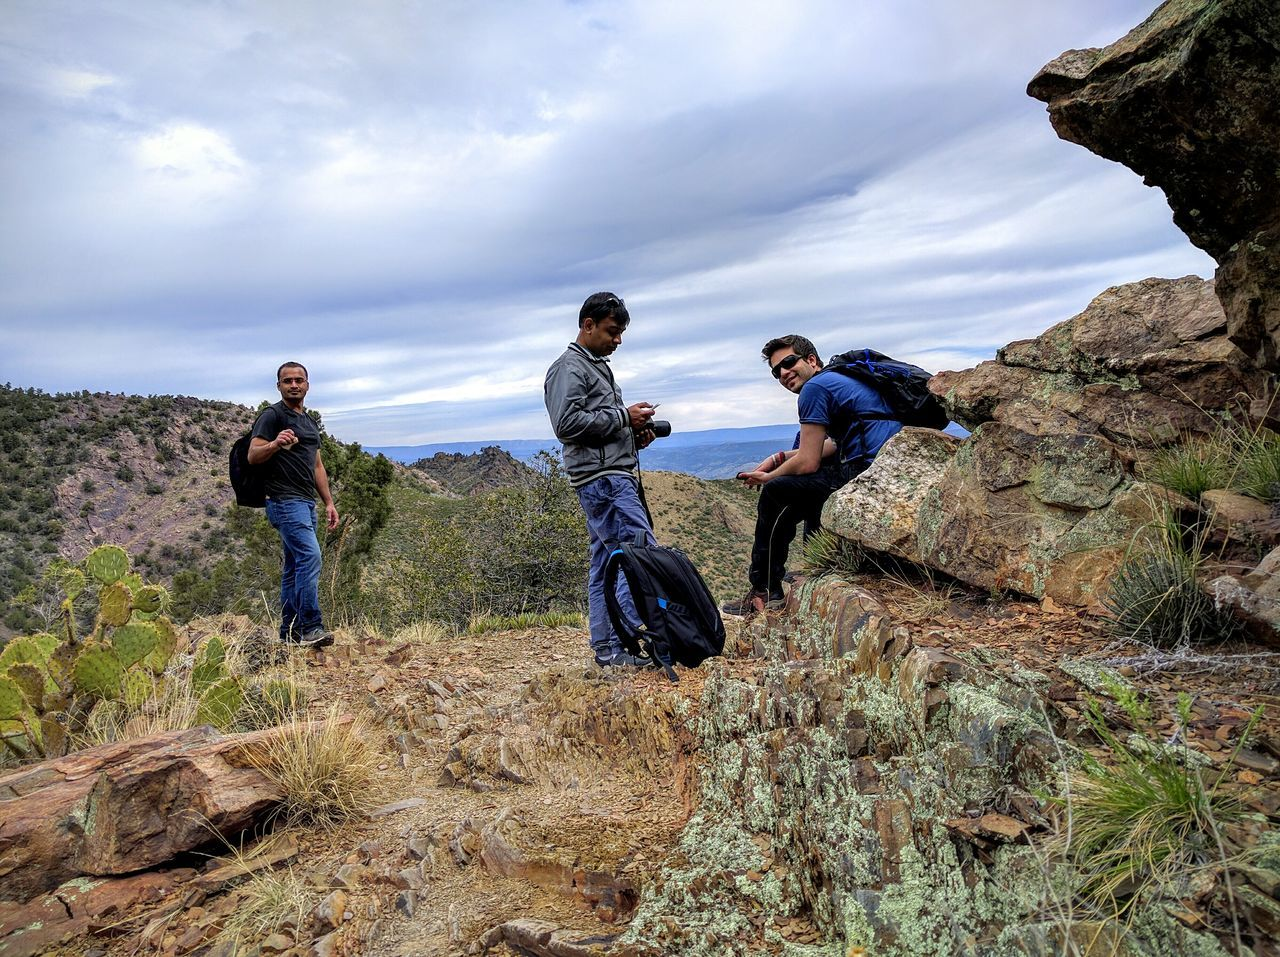 real people, nature, lifestyles, rock - object, cloud - sky, leisure activity, beauty in nature, full length, togetherness, mountain, day, sky, men, scenics, casual clothing, hiking, outdoors, standing, tranquility, adventure, friendship, landscape, women, people